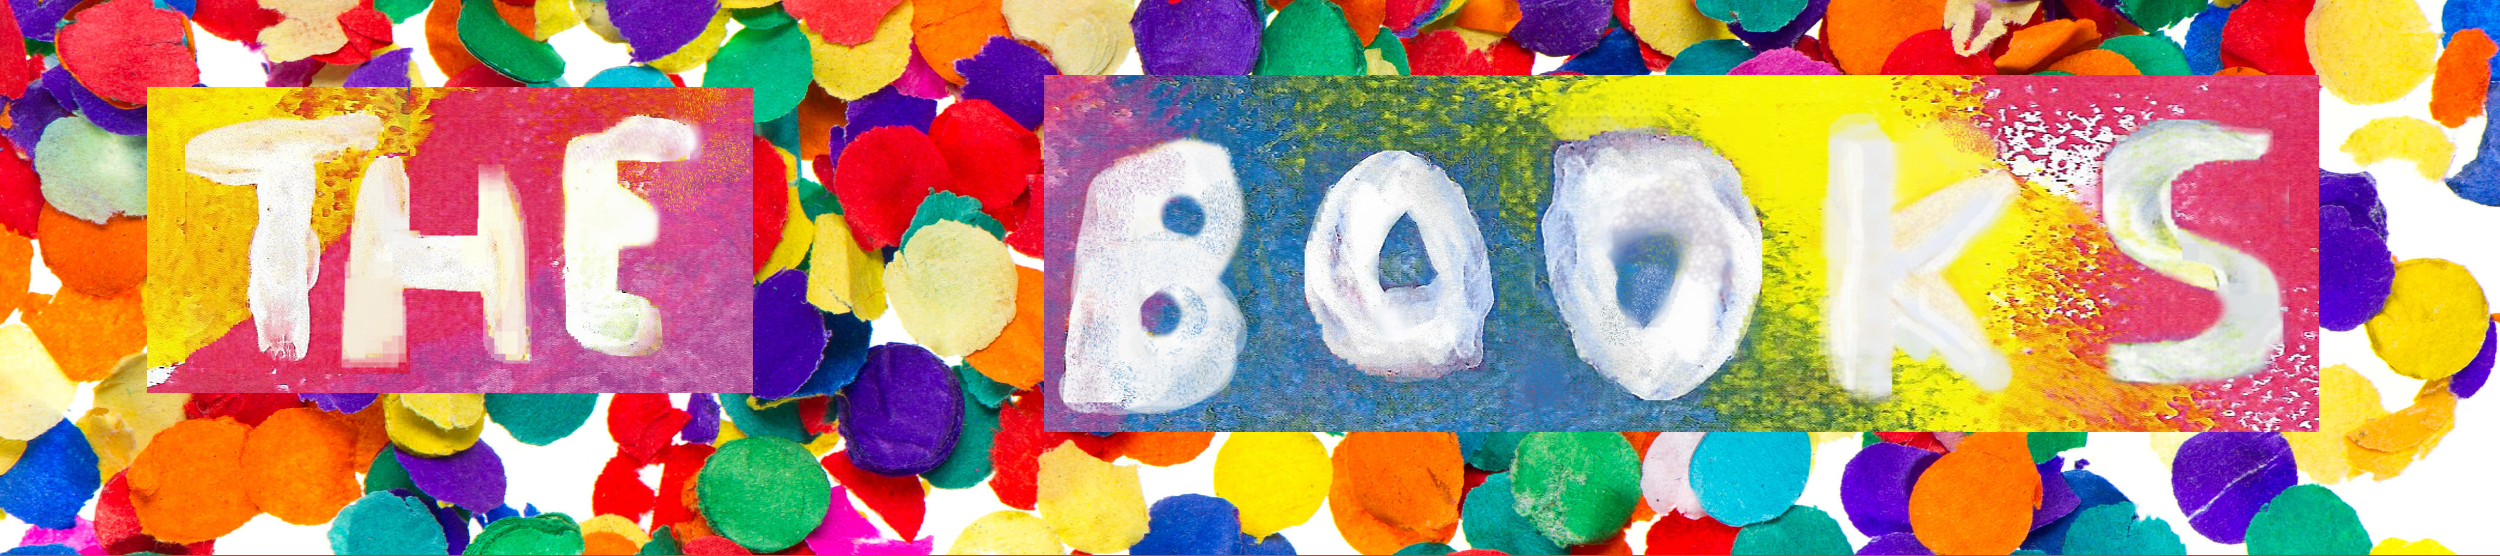 """Image Description: The words """"The Books"""" appear finger painted on a colourful background, surrounded by confetti."""